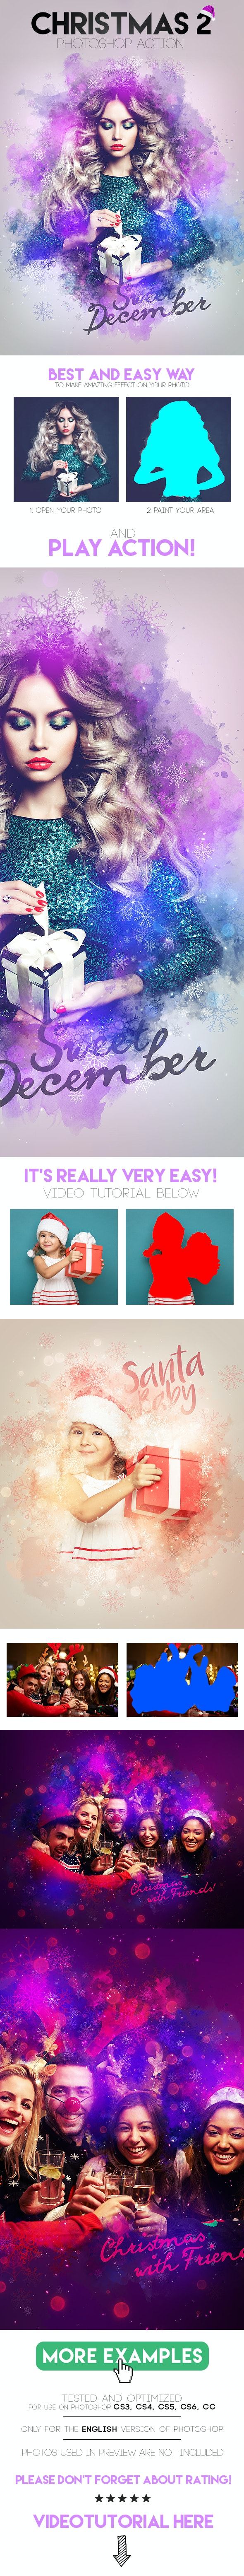 Christmas 2 Photoshop Action - Photo Effects Actions